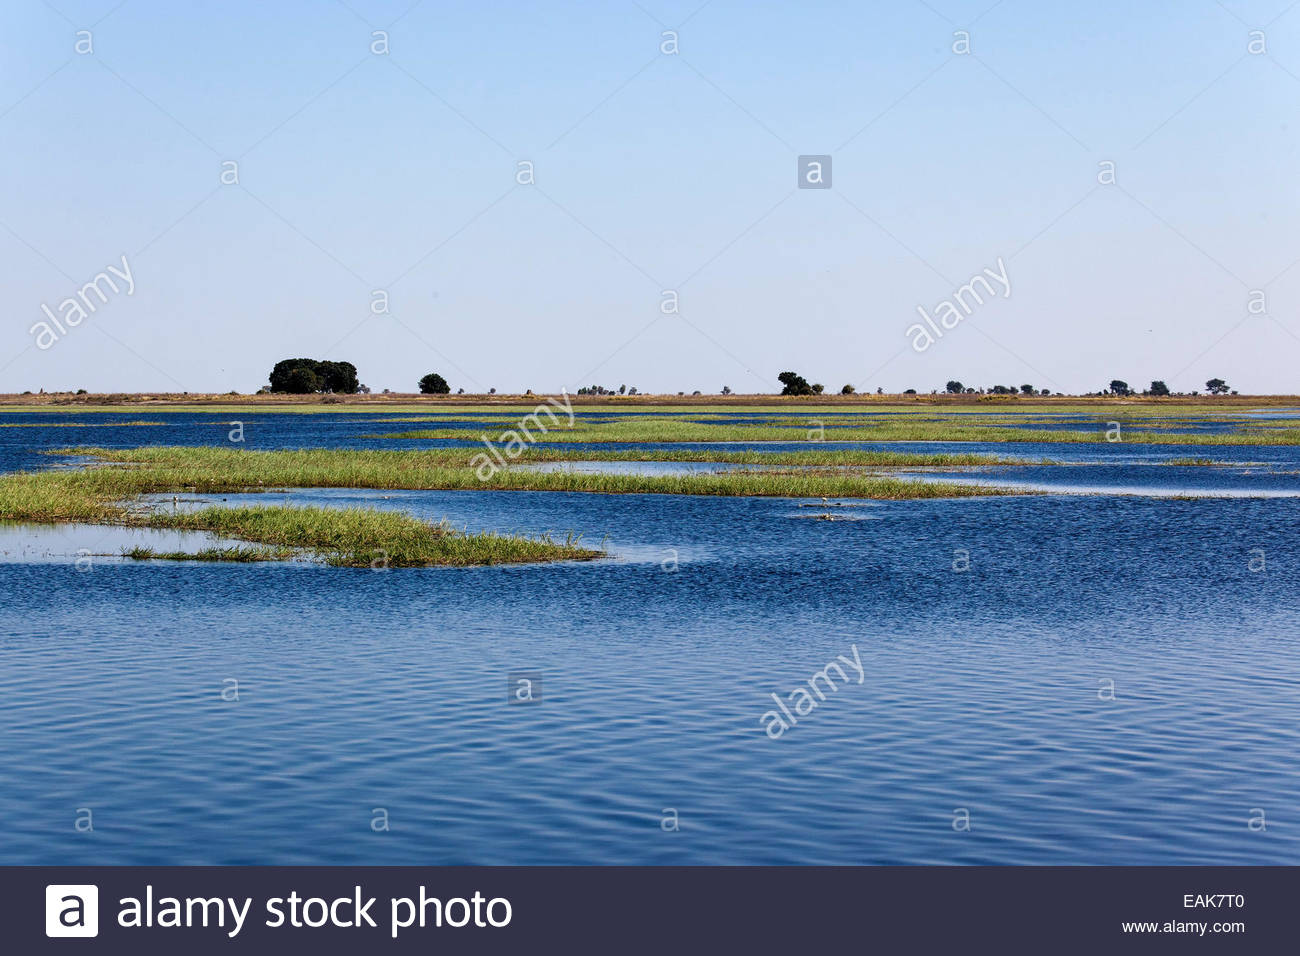 River landscape in the Namibian border area, Chobe National Park, North-West District, Botswana - Stock Image